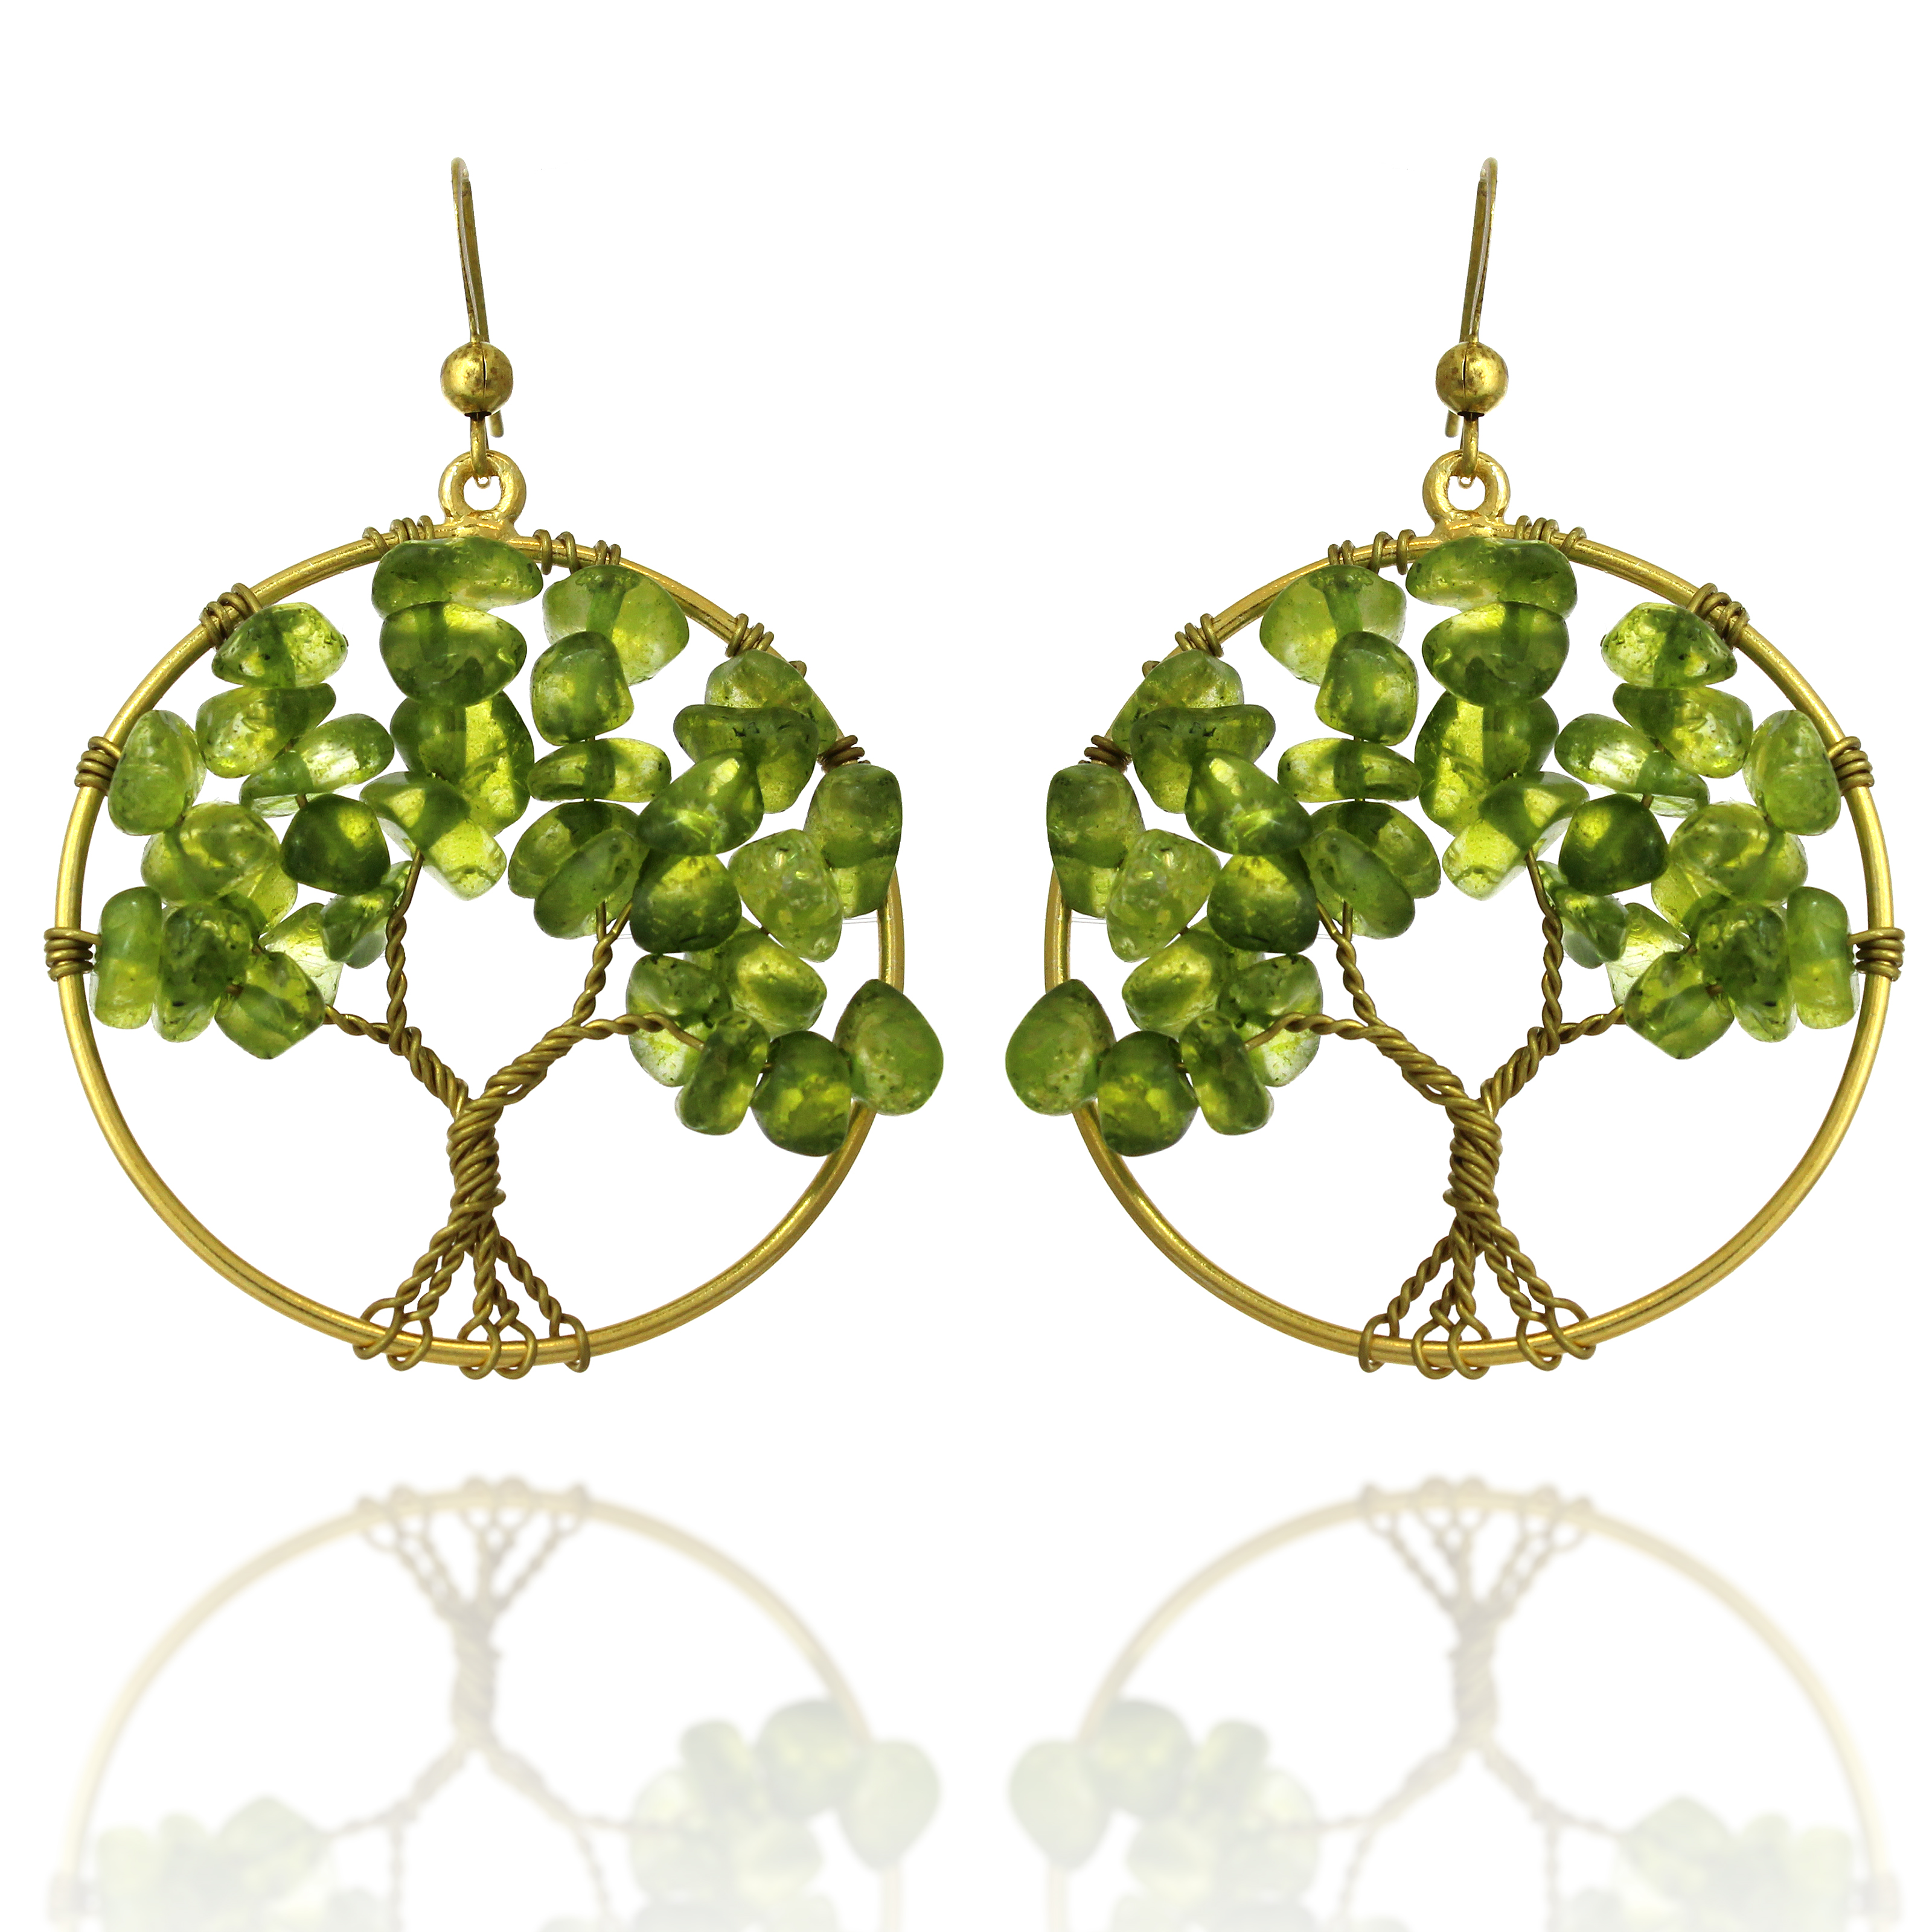 Handmade Gold-Plated Brass Dyed Green Glass Beads Tree of Life Dangle Earrings